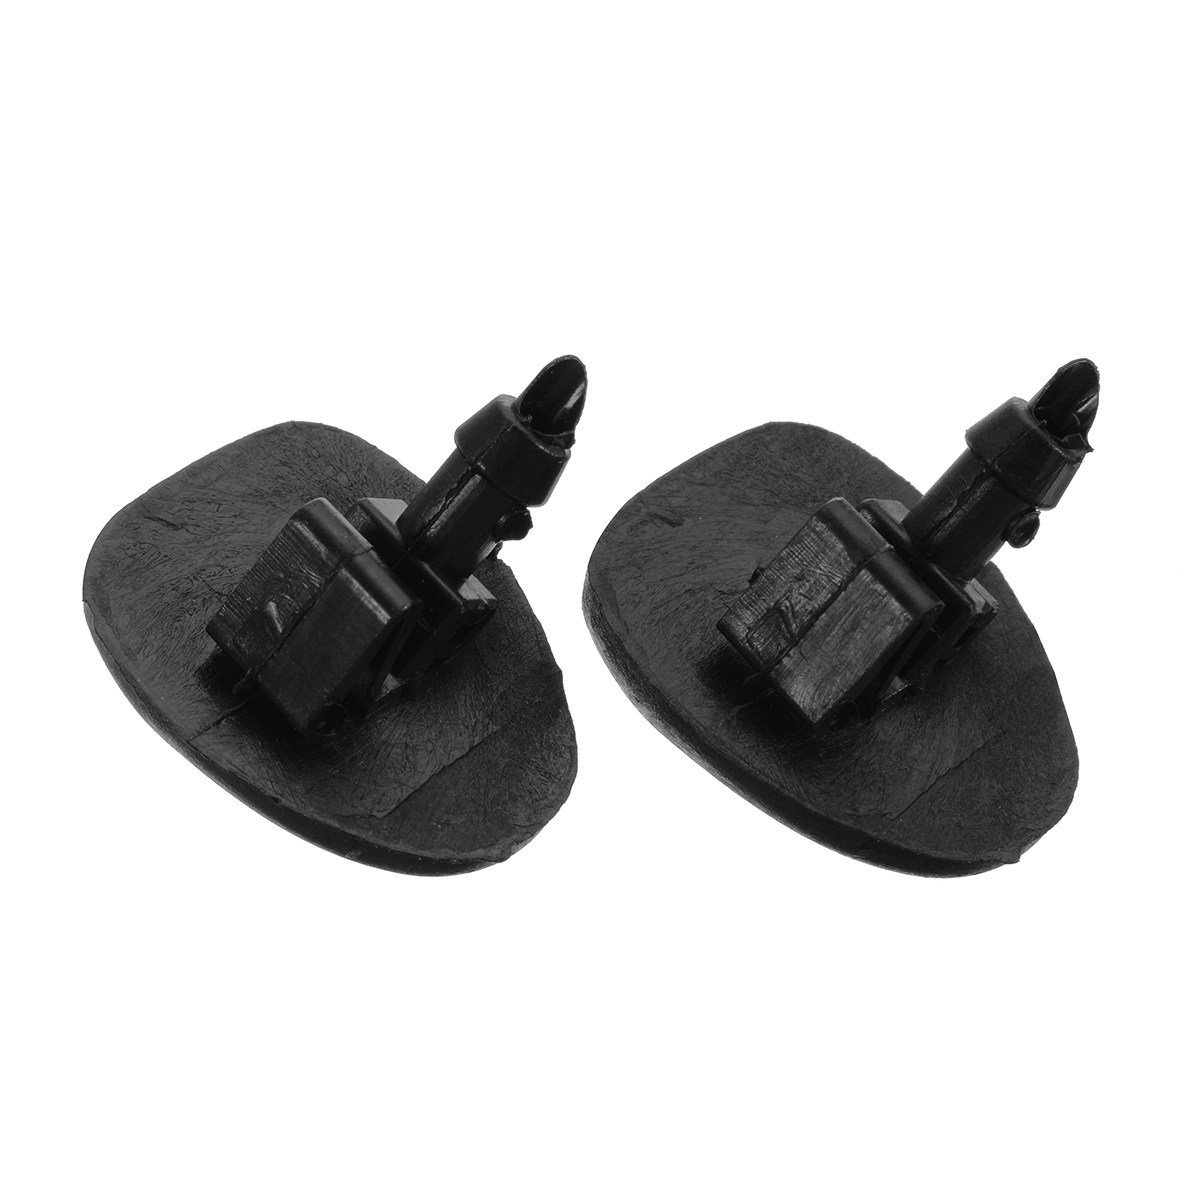 2pcs Car Front Glass Windshield Water Washer Spray Nozzle Scrubber Peugeot 207 Fuse Box For 206 Citroen C2 Accessories In Windscreen Wipers From